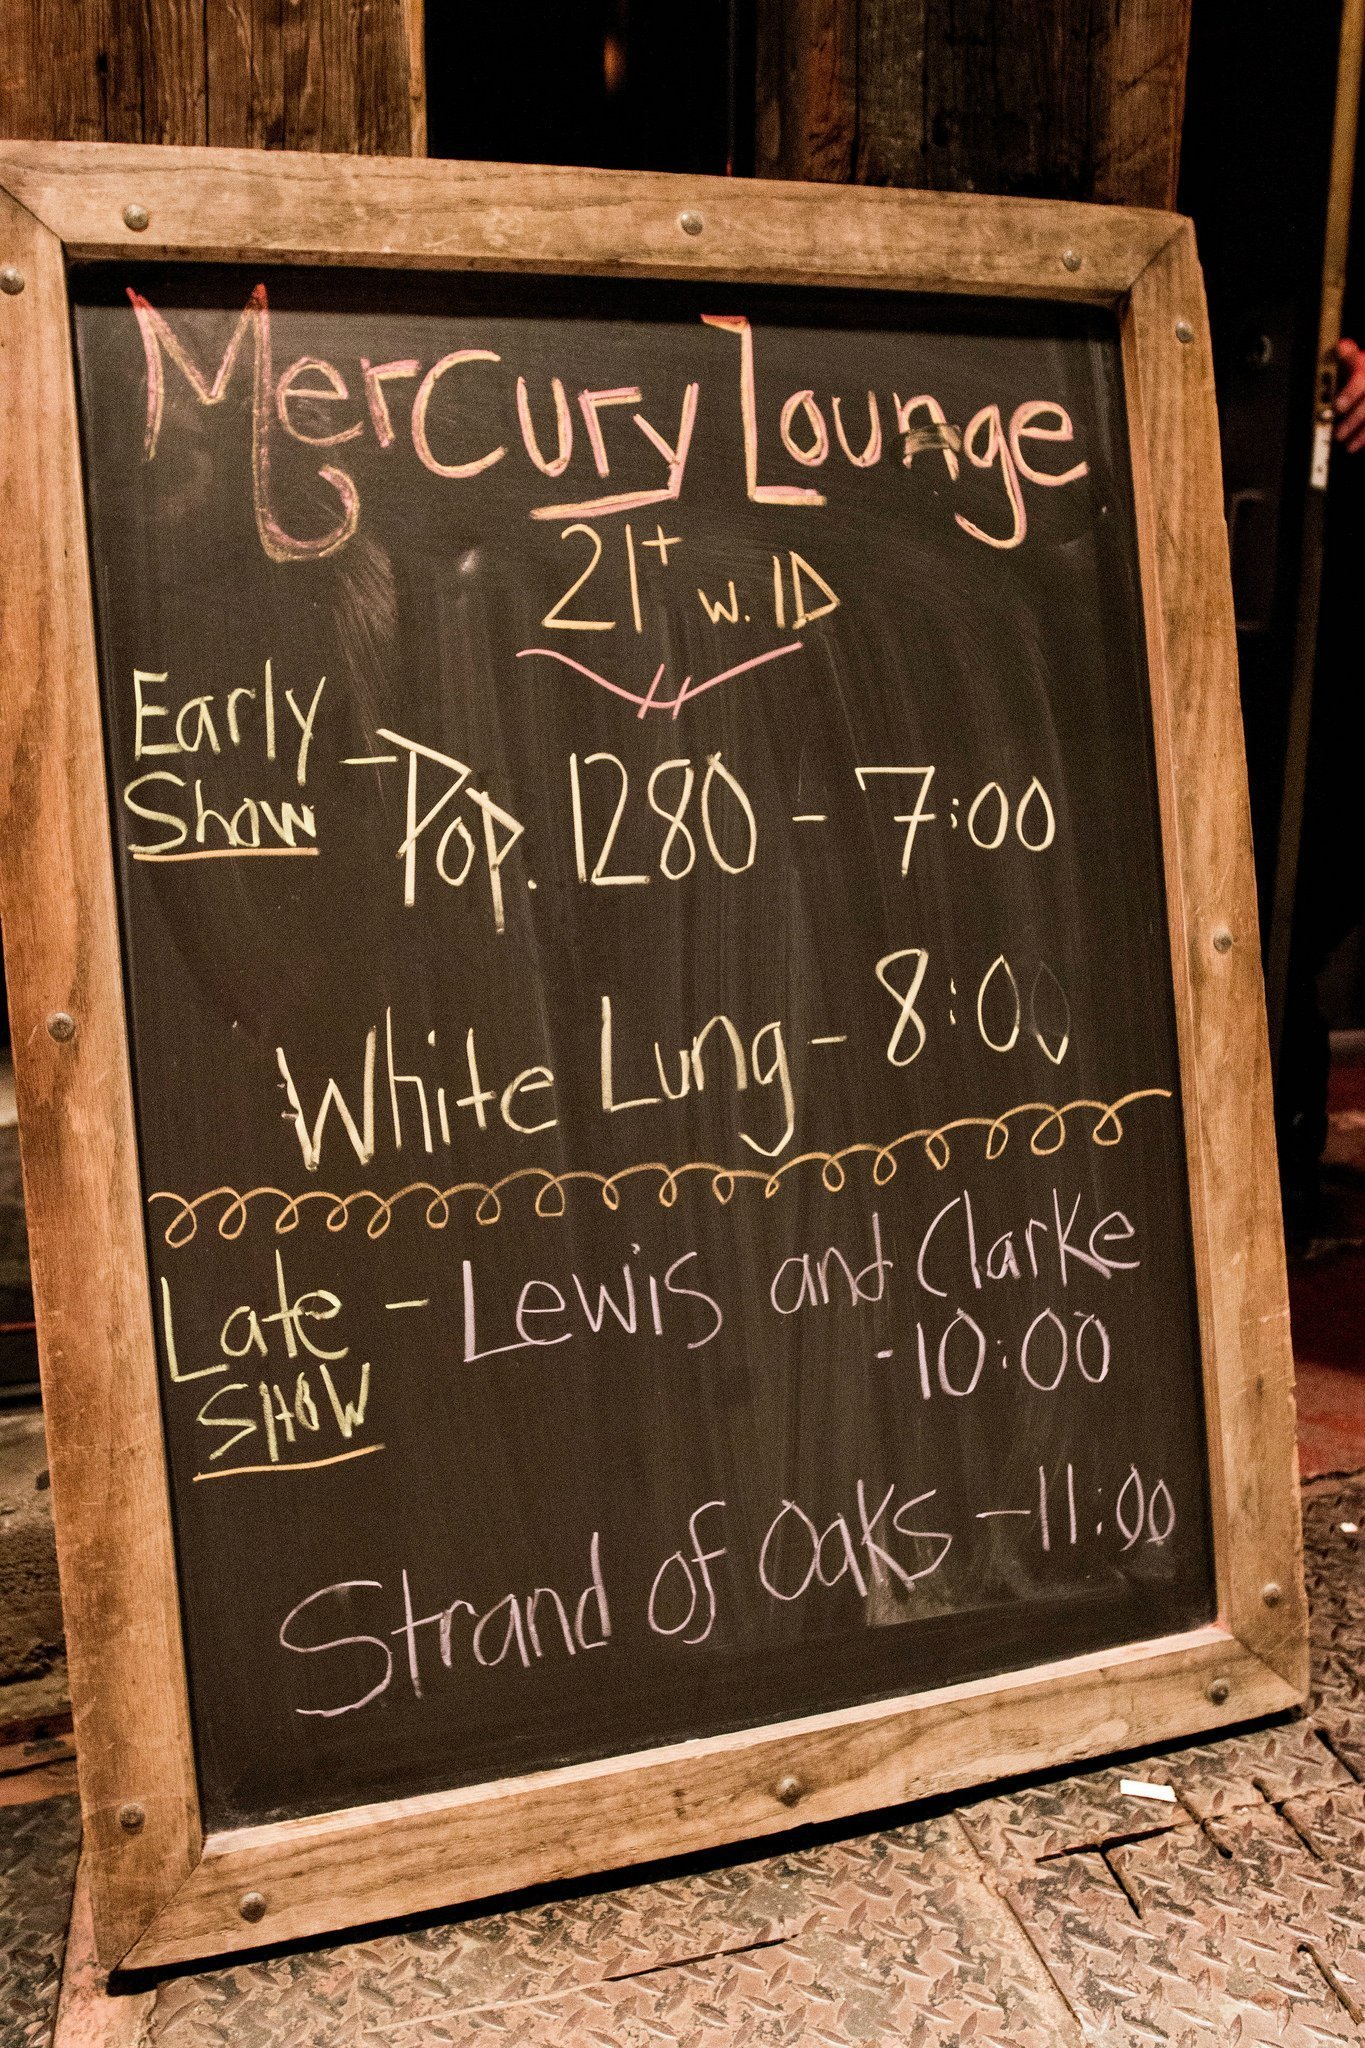 Strand-of-Oaks-marquee-Mercury-Lounge-NYC-2014